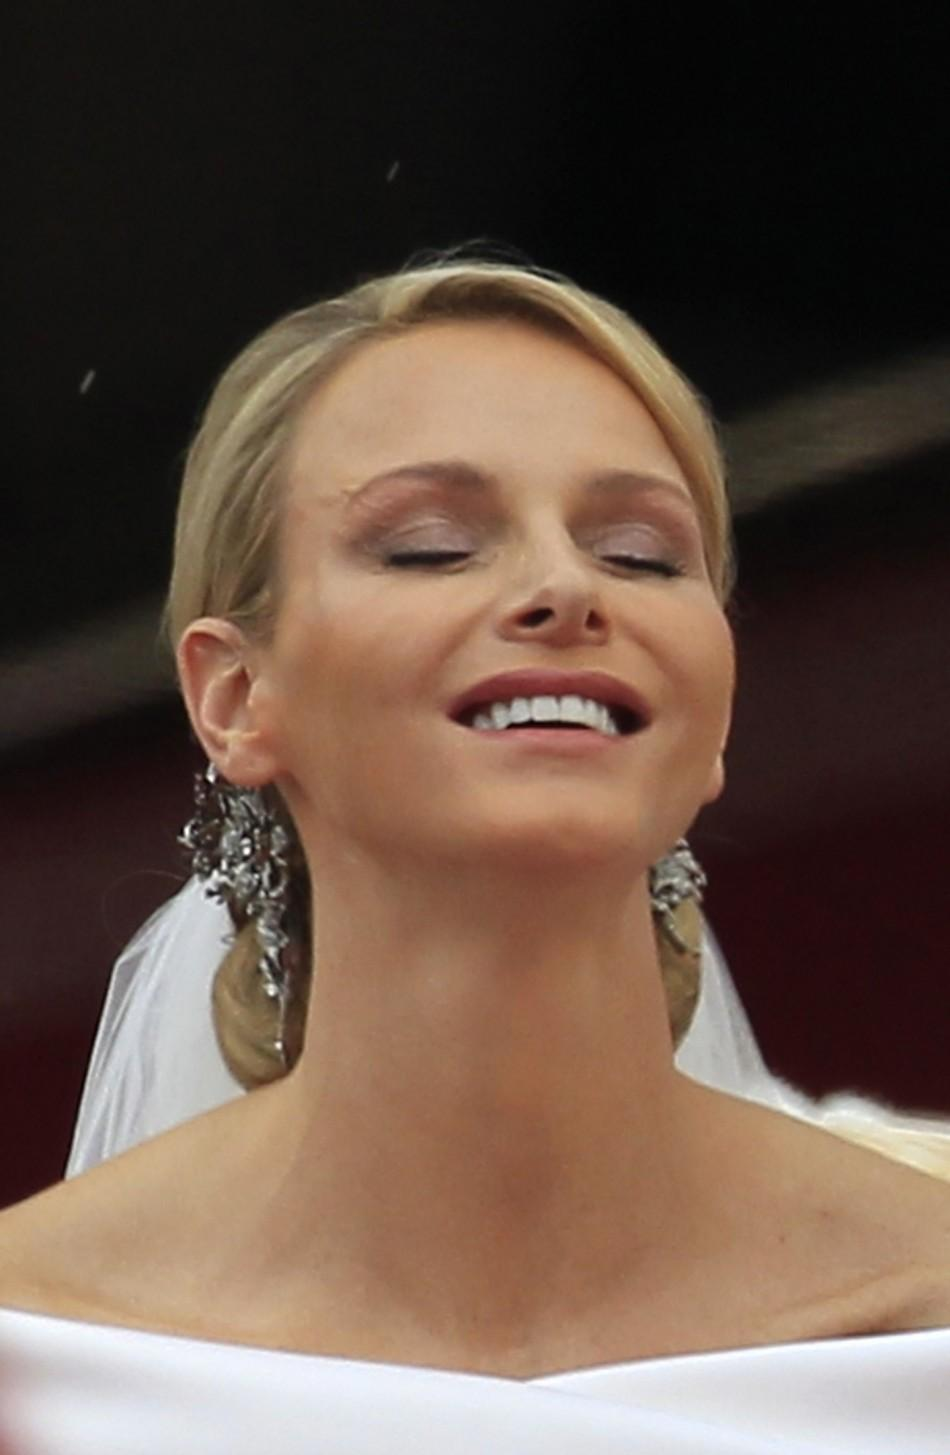 Monaco's Princess Charlene, wife of Prince Albert II smiles after the religious wedding ceremony in at the Palace in Monaco